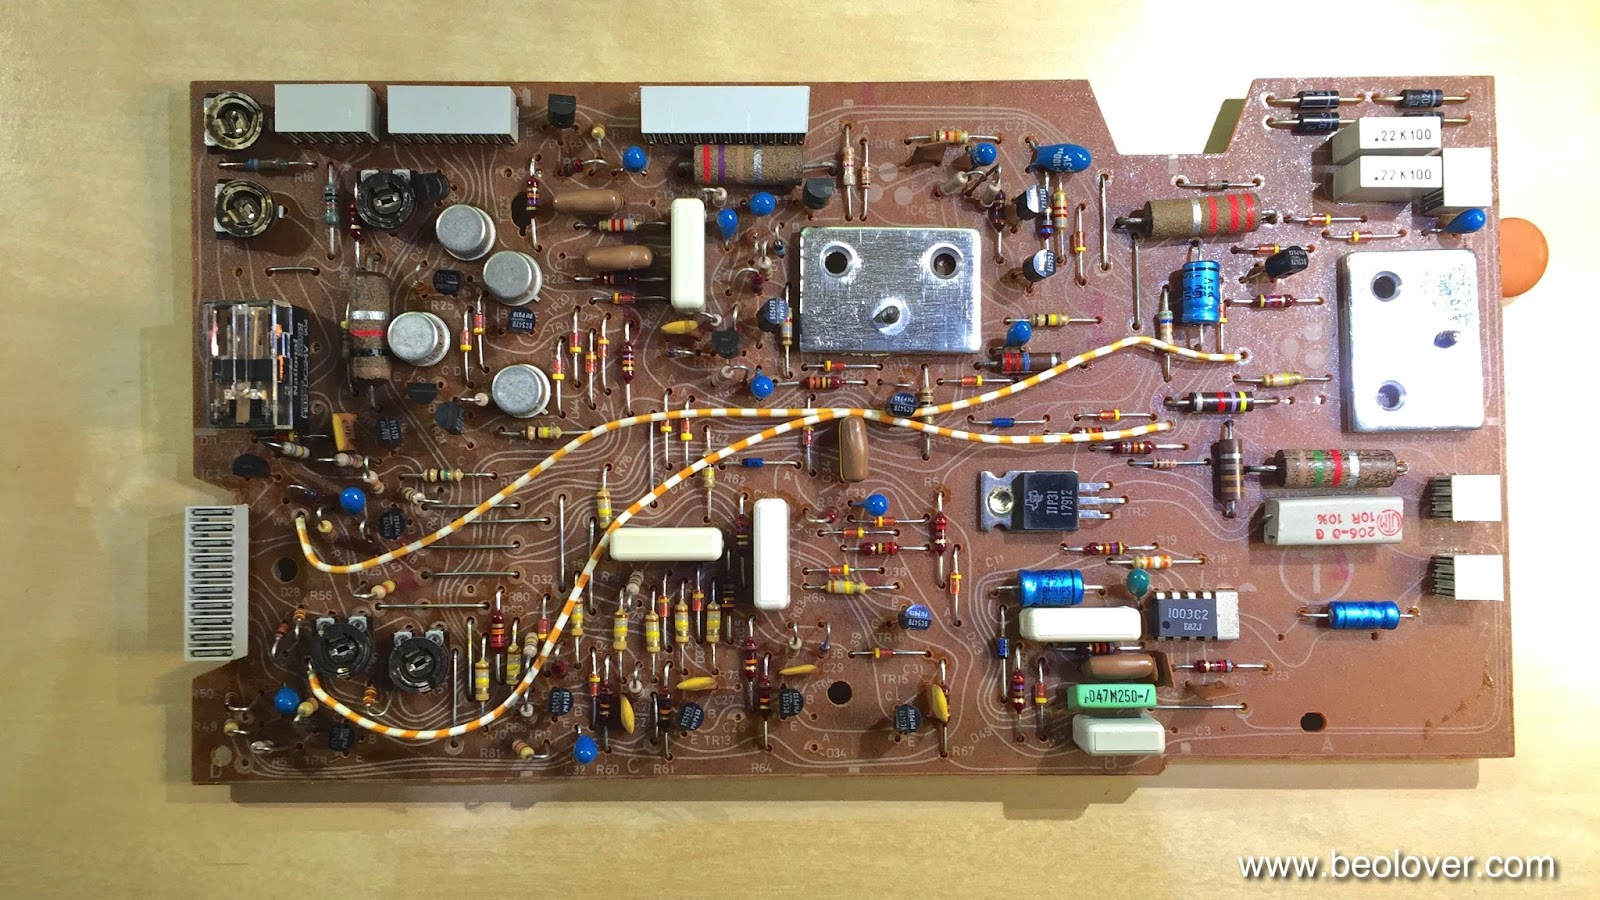 Beolover Beogram 4004 5525 Replacing Electrolytic Capacitors And Dc Motor Control Using Relay The Original National Rpm Trimmers In Detail